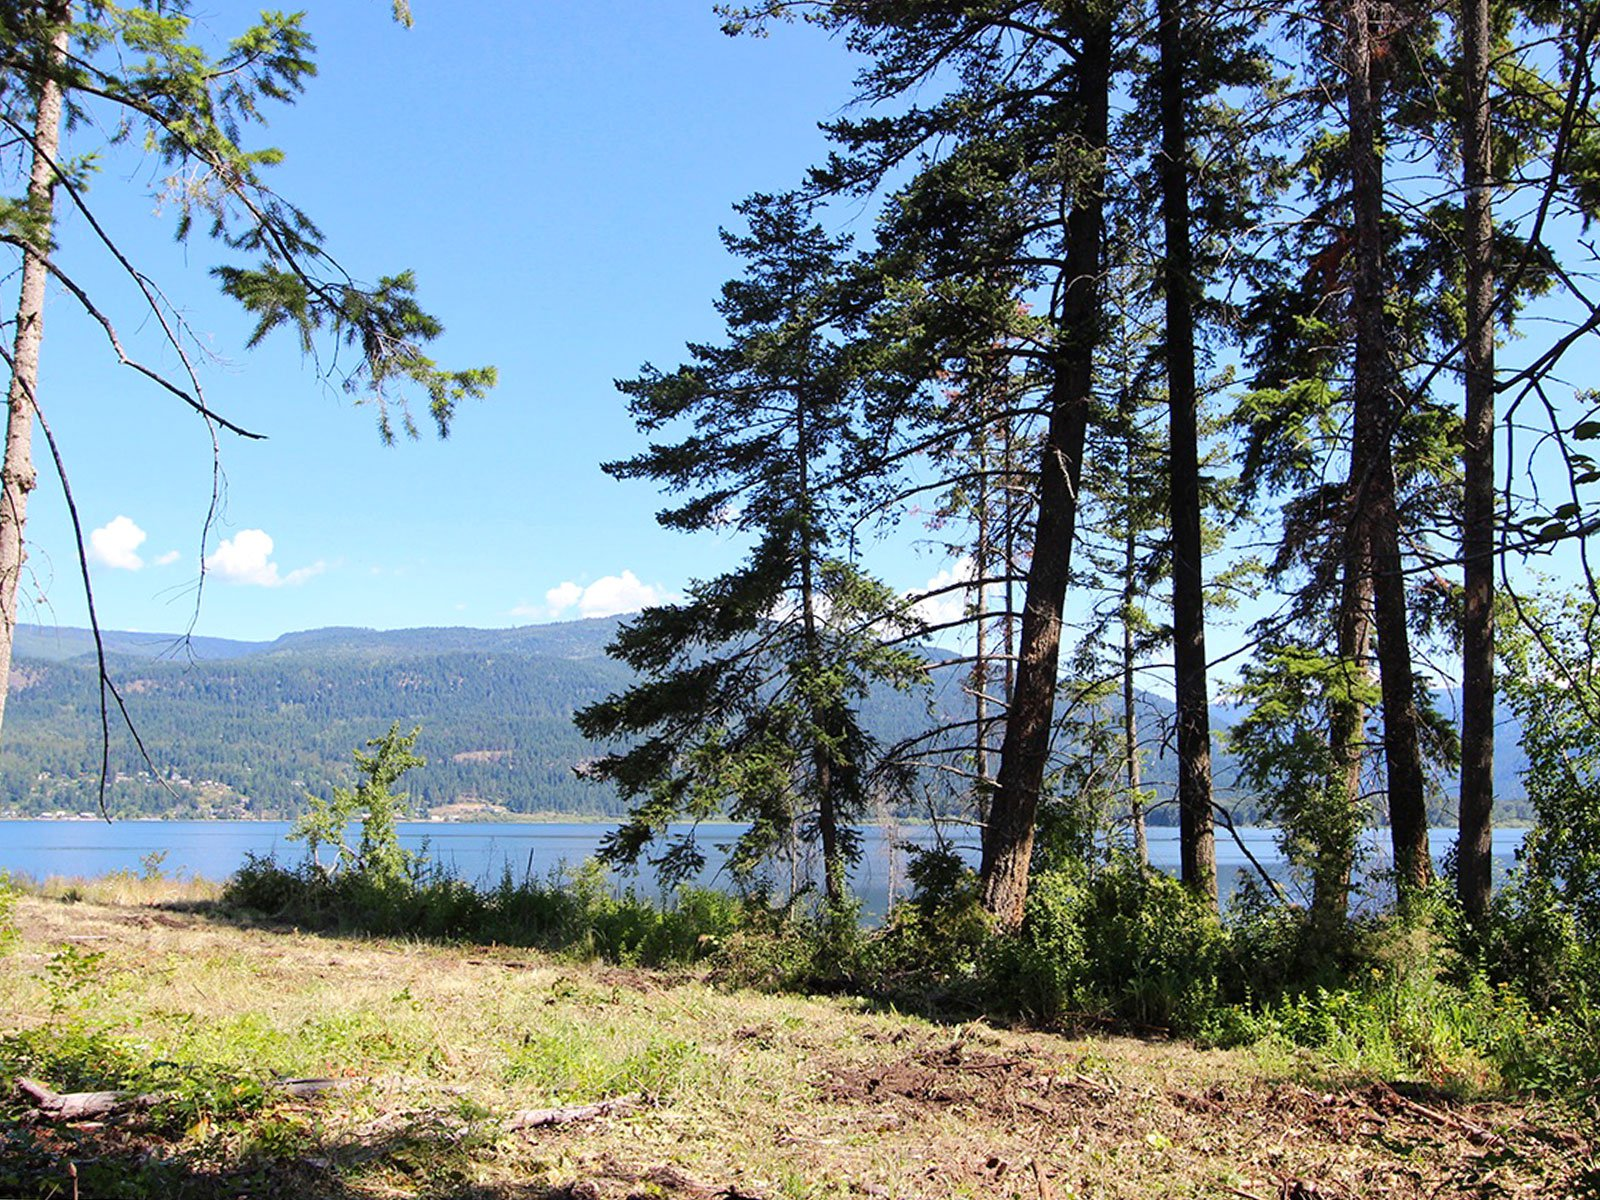 Photo 37: Photos: 663 Waverly Park Frontage Road in Sorrento, BC: Land Only for sale (Sorrento)  : MLS®# 10186241